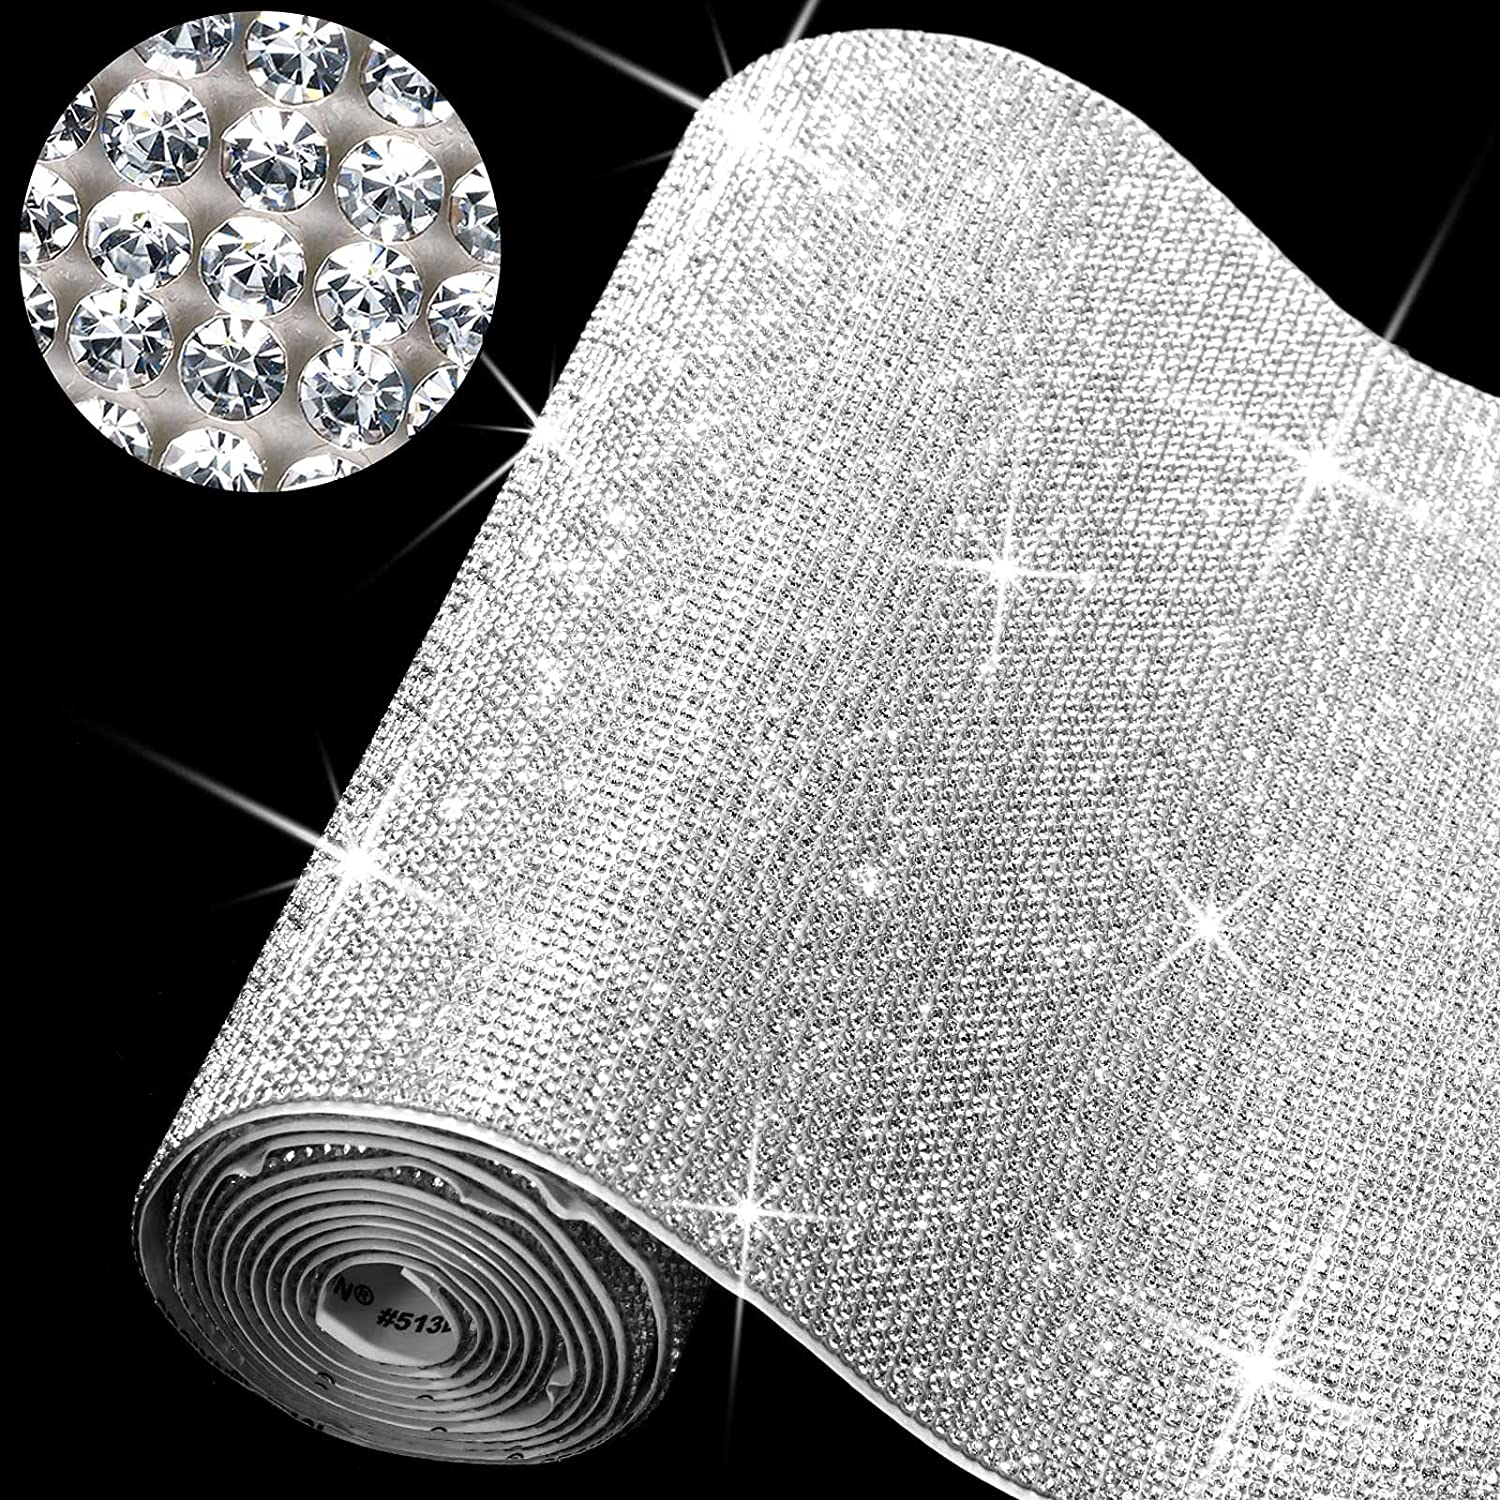 60750 Pieces Bling Rhinestone Rhines Excellence Self-Adhesive Sheet Crystal supreme